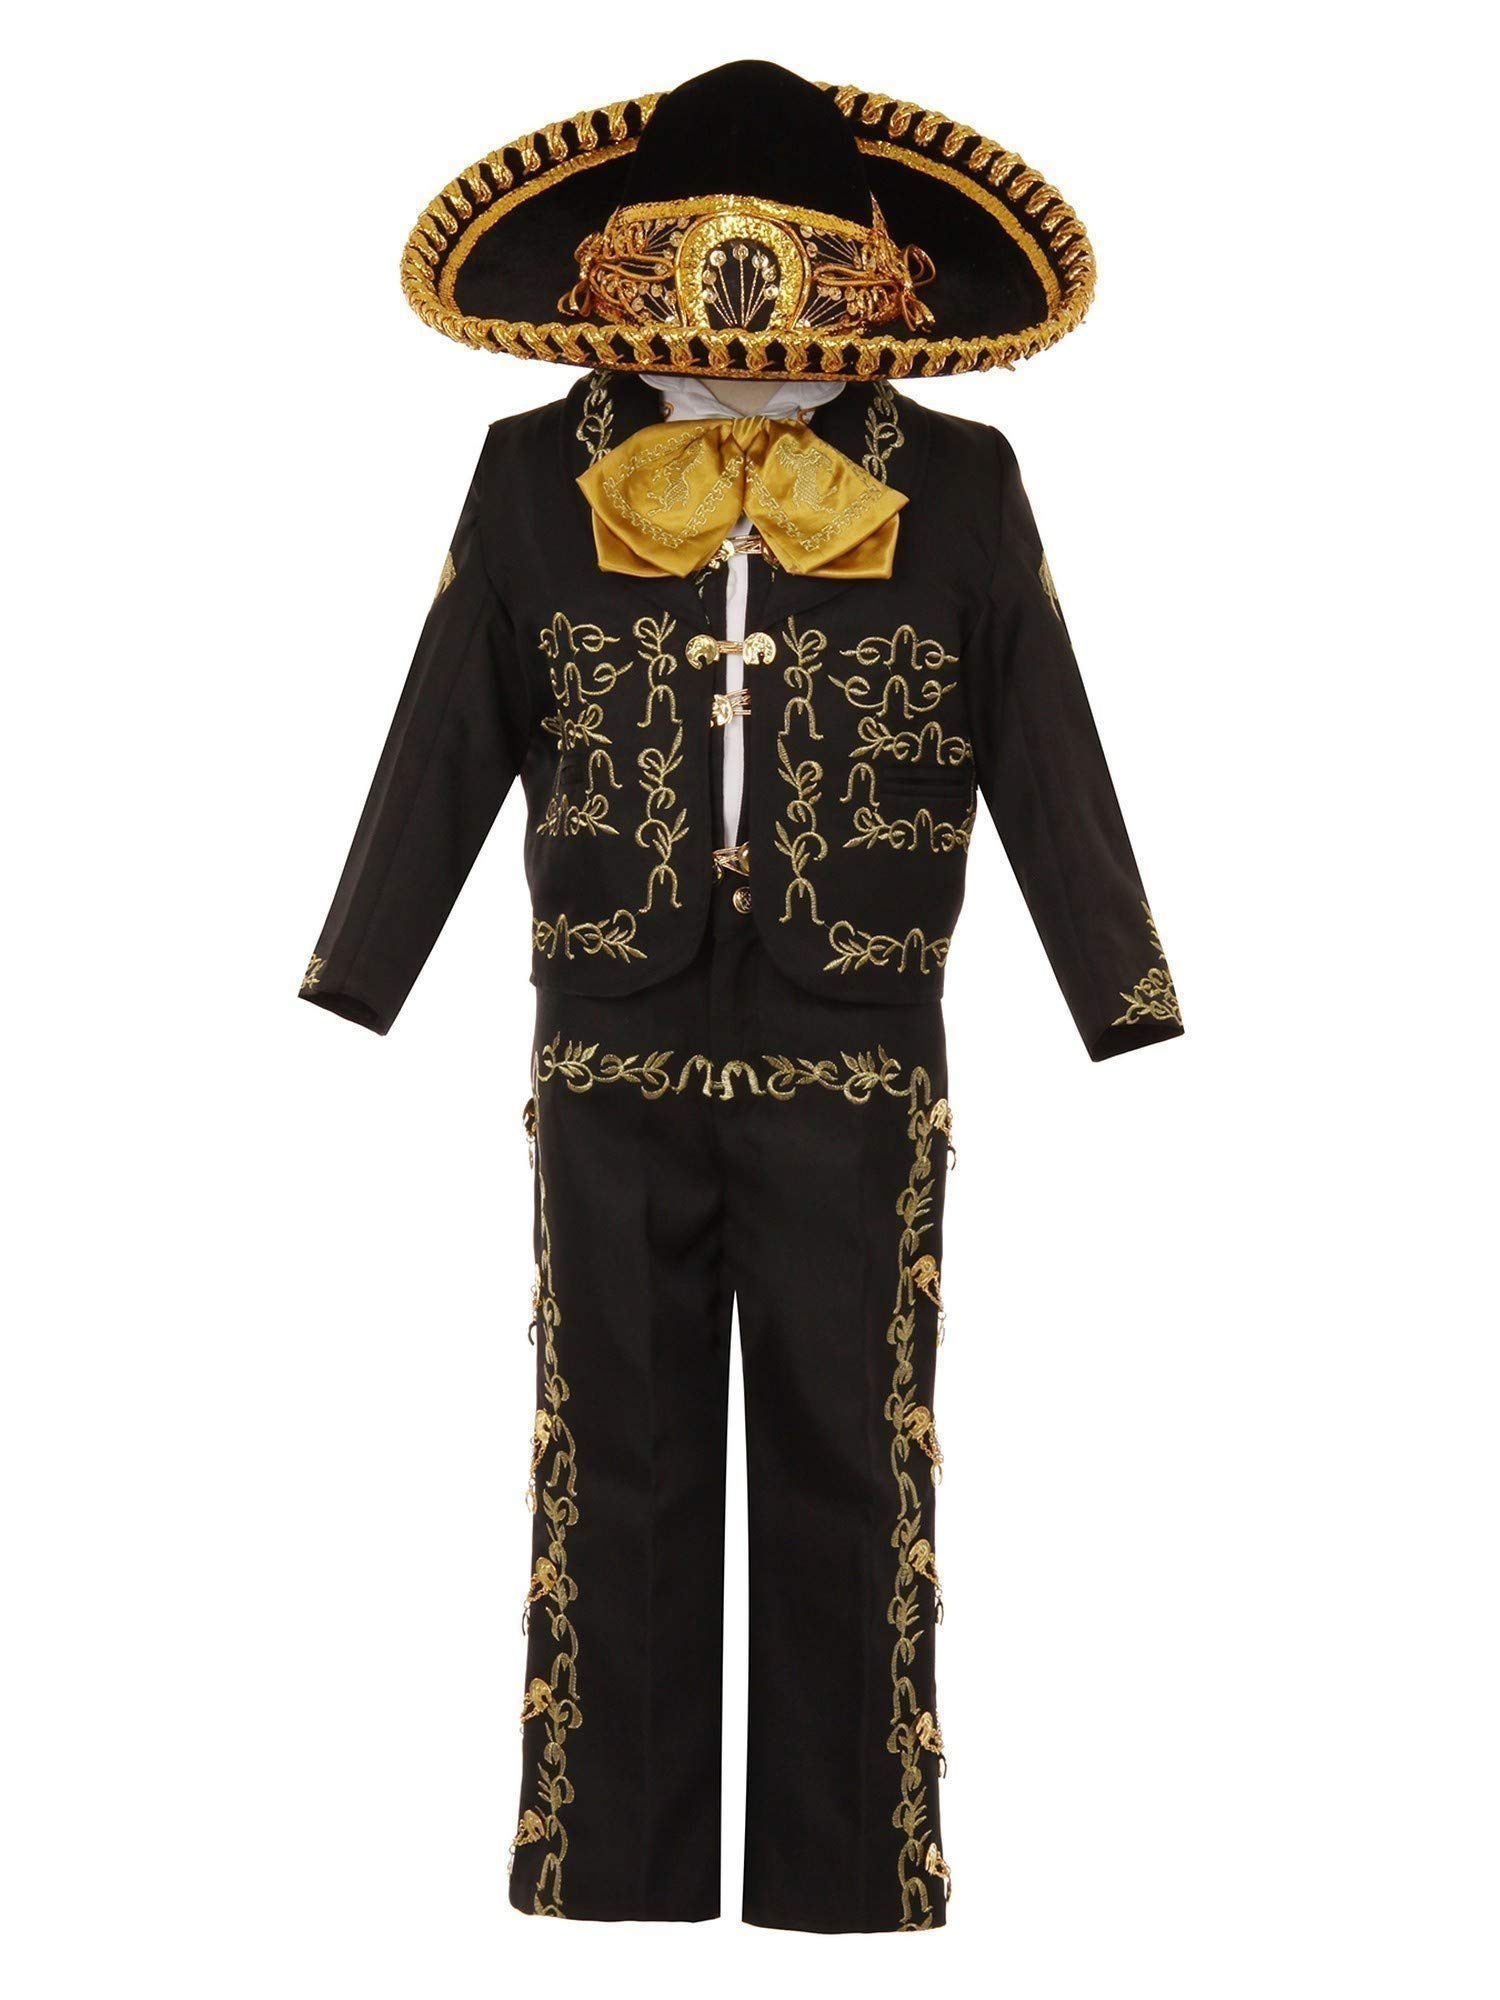 Rain Kids Baby Boys Black Gold Rooster Embroidery Elegant 6 Pc Charro Suit 12M by The Rain Kids